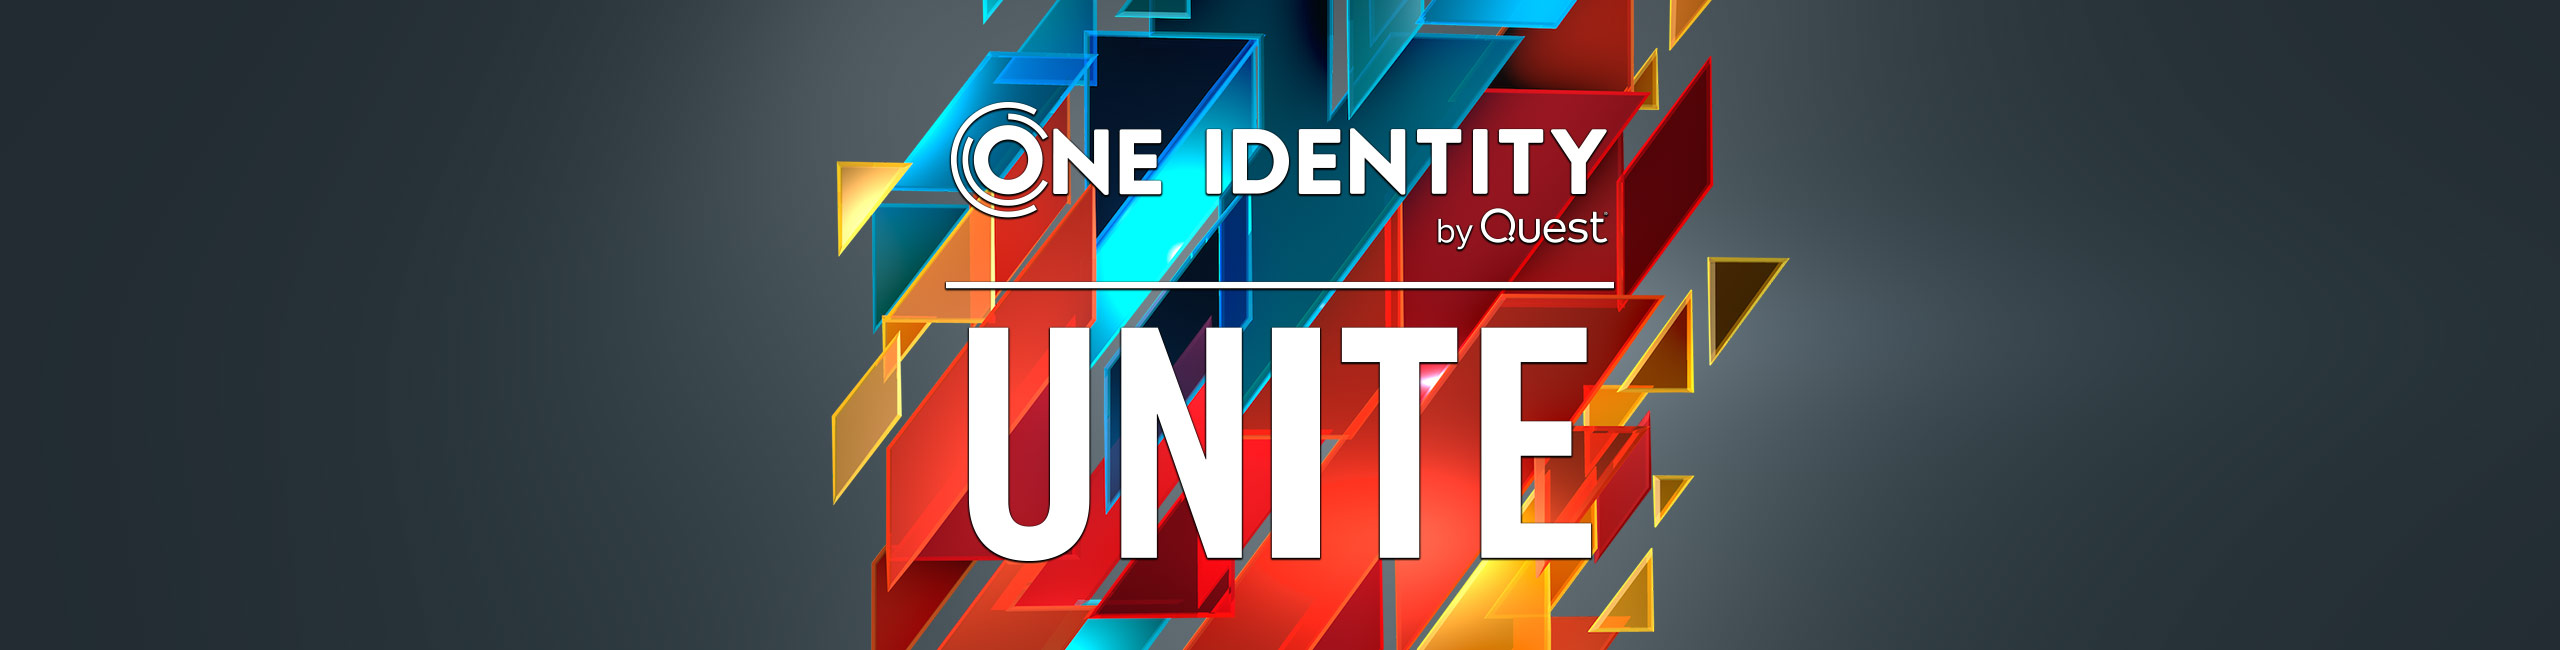 One Identity UNITE - Barcelona, Spain 2020